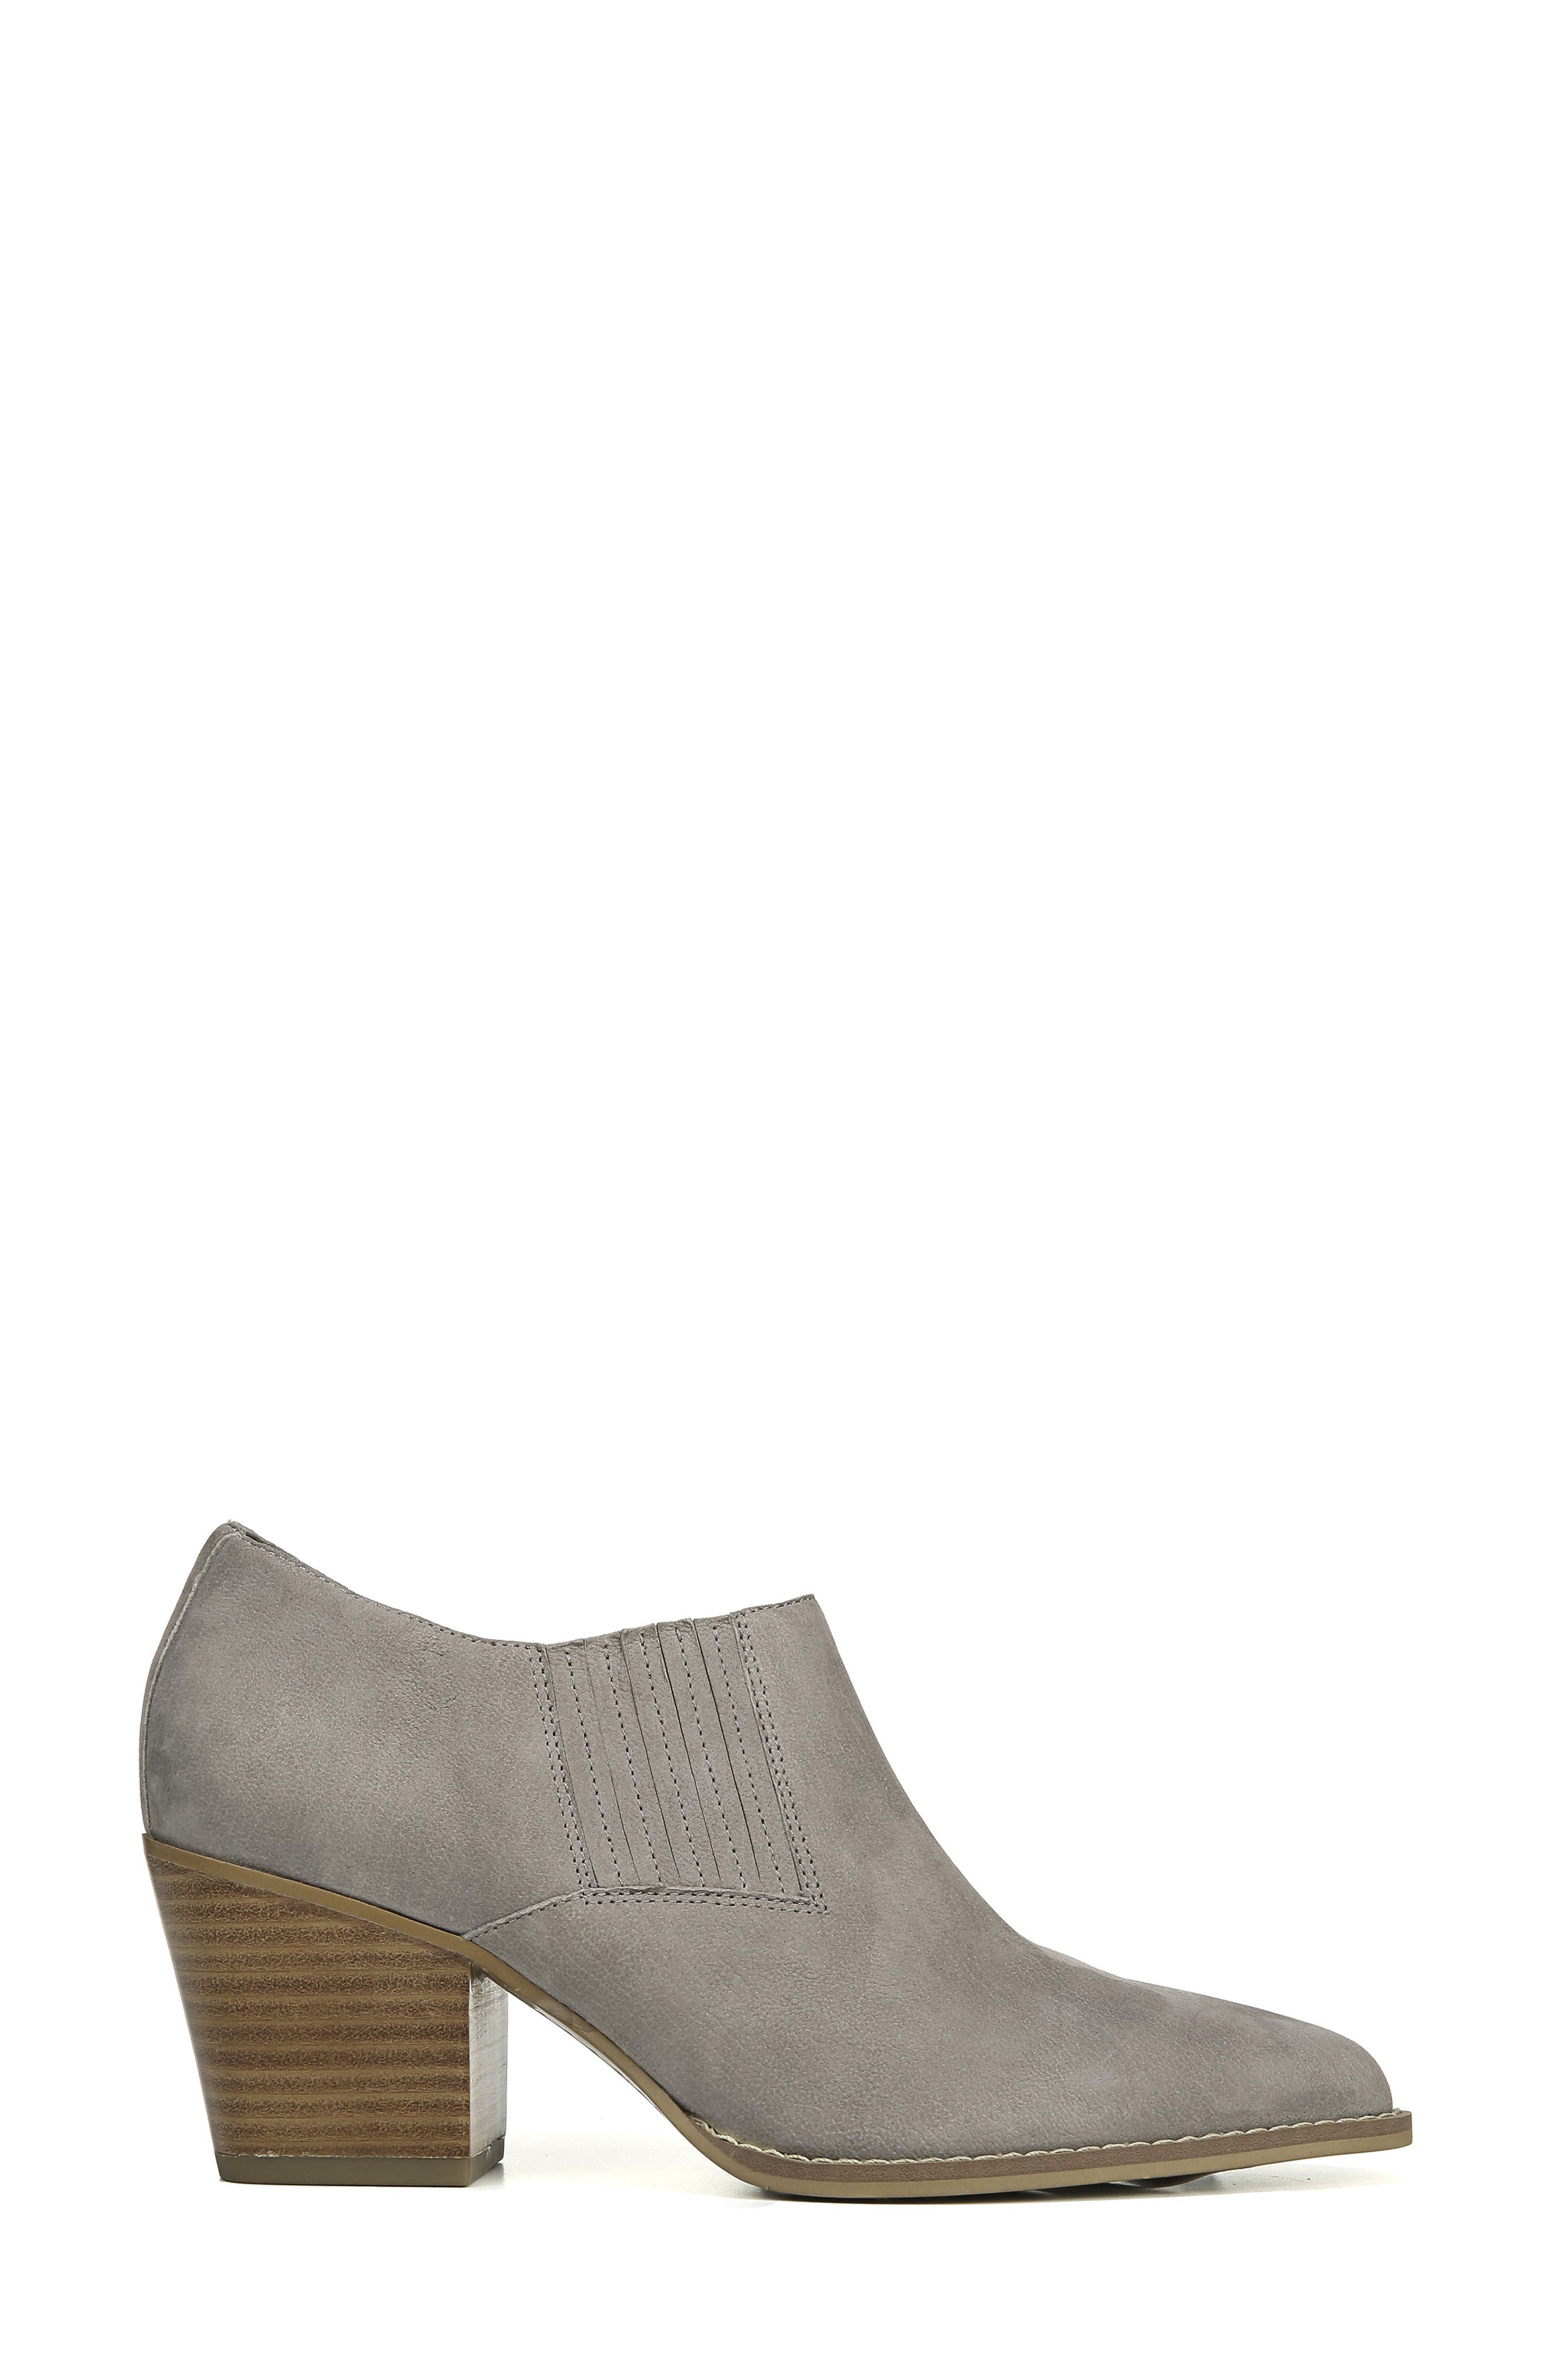 Camella Bootie,                             Alternate thumbnail 3, color,                             GREYSTONE NUBUCK LEATHER